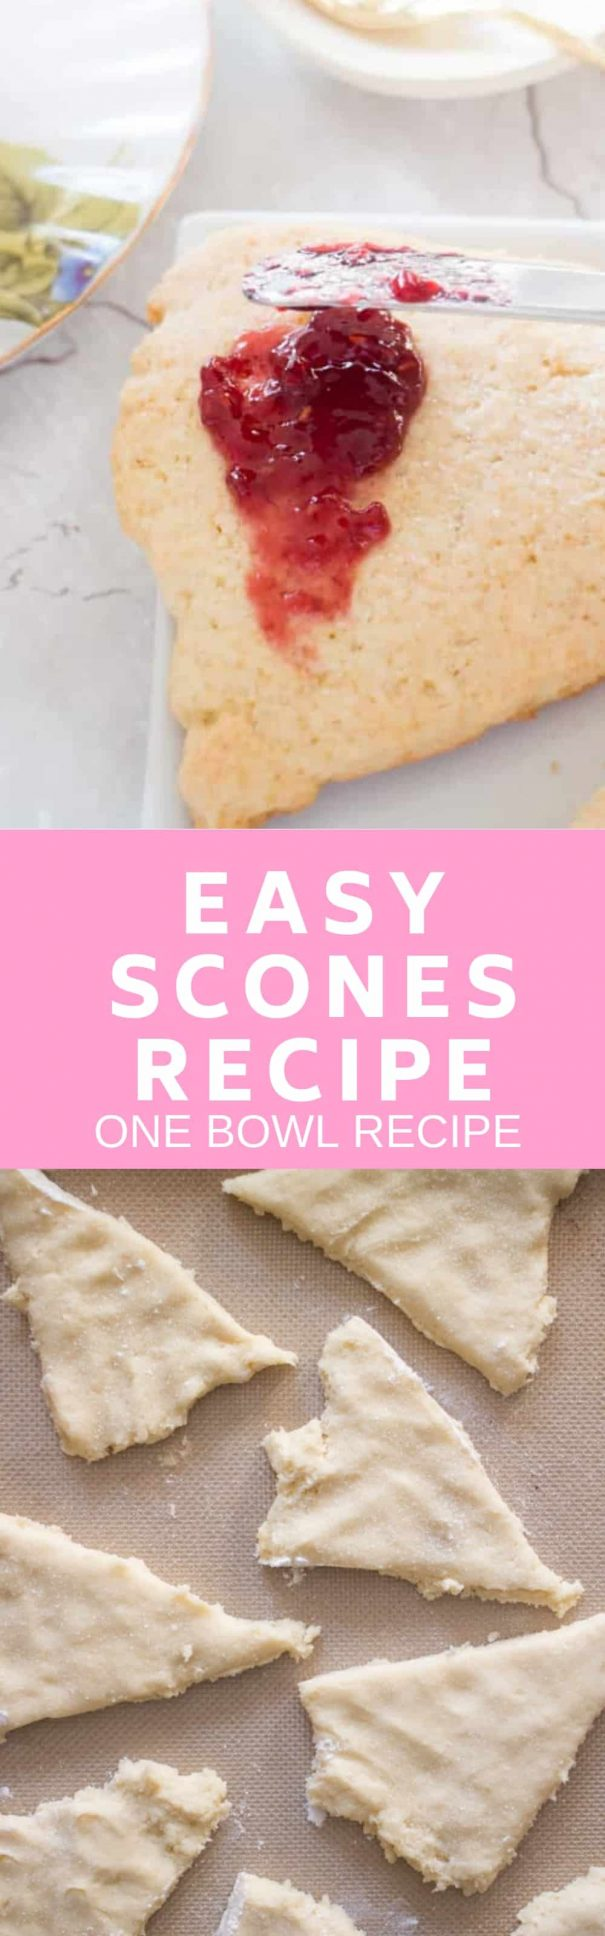 You only need one bowl for this Easy Scones Recipe! The secret to this homemade recipe is sour cream which makes light scones! Serve these crumbly English soft sconeswith clotted cream, jam and tea! You can add blueberry or raspberry to them to make them berry flavored!